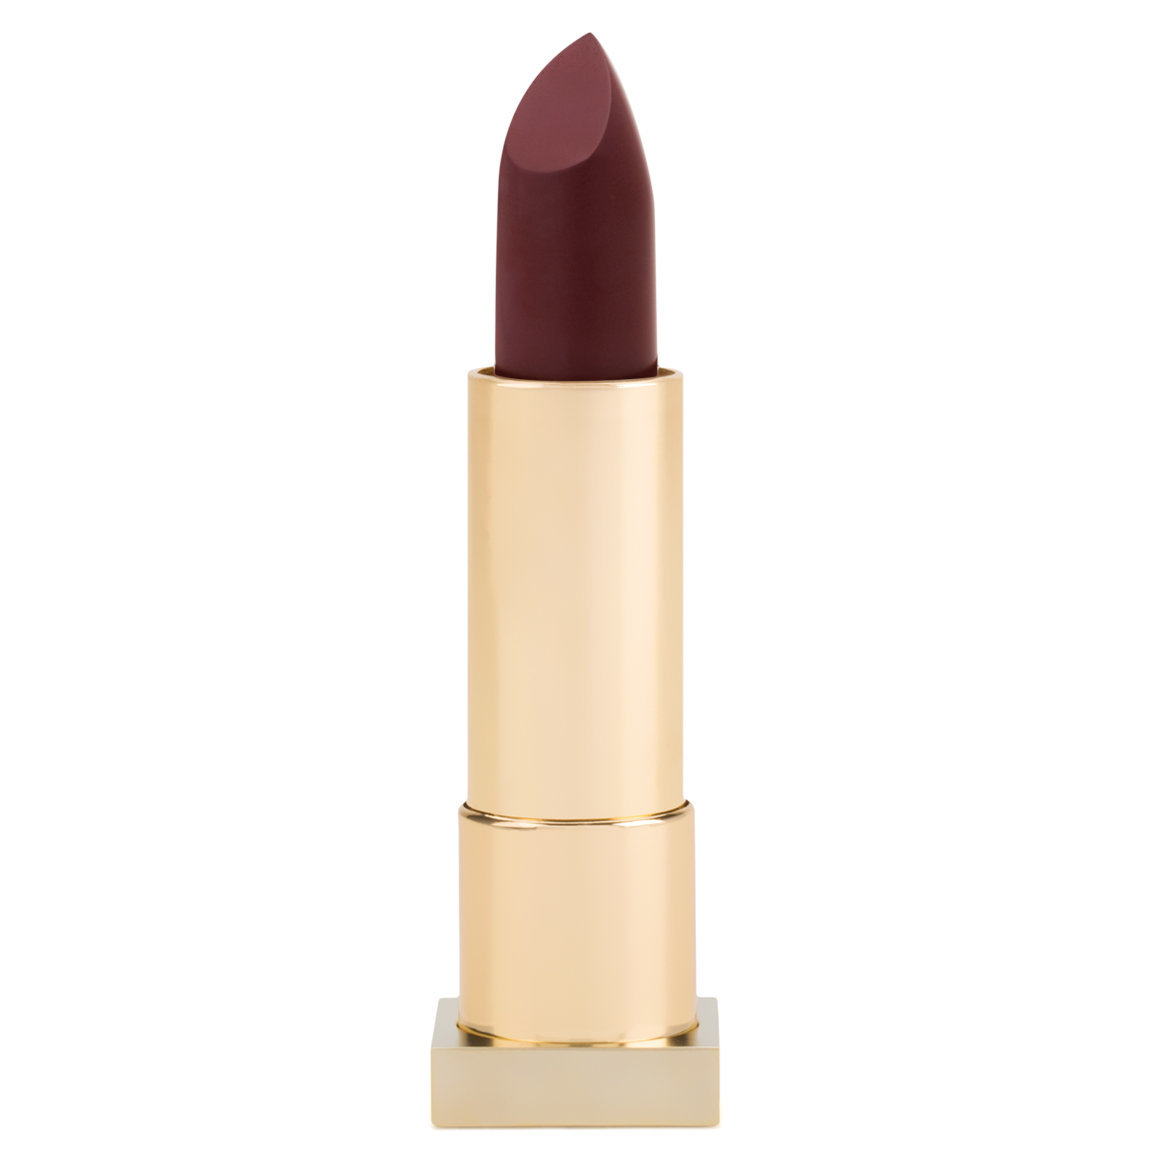 Kevyn Aucoin The Expert Lip Color Twilight Lotus alternative view 1.